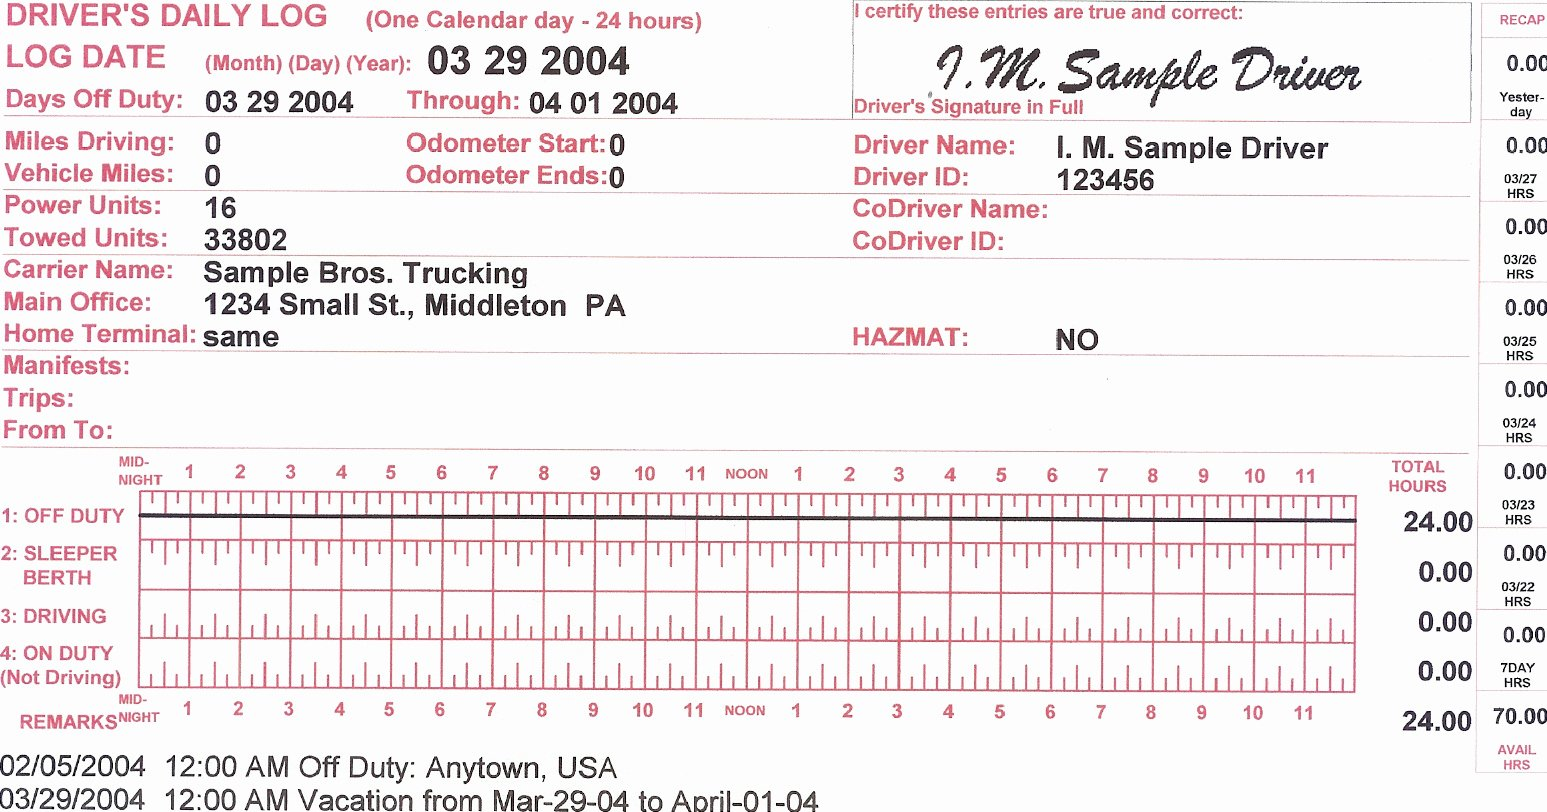 Trip Sheets for Truck Drivers Unique Days F and Vacation